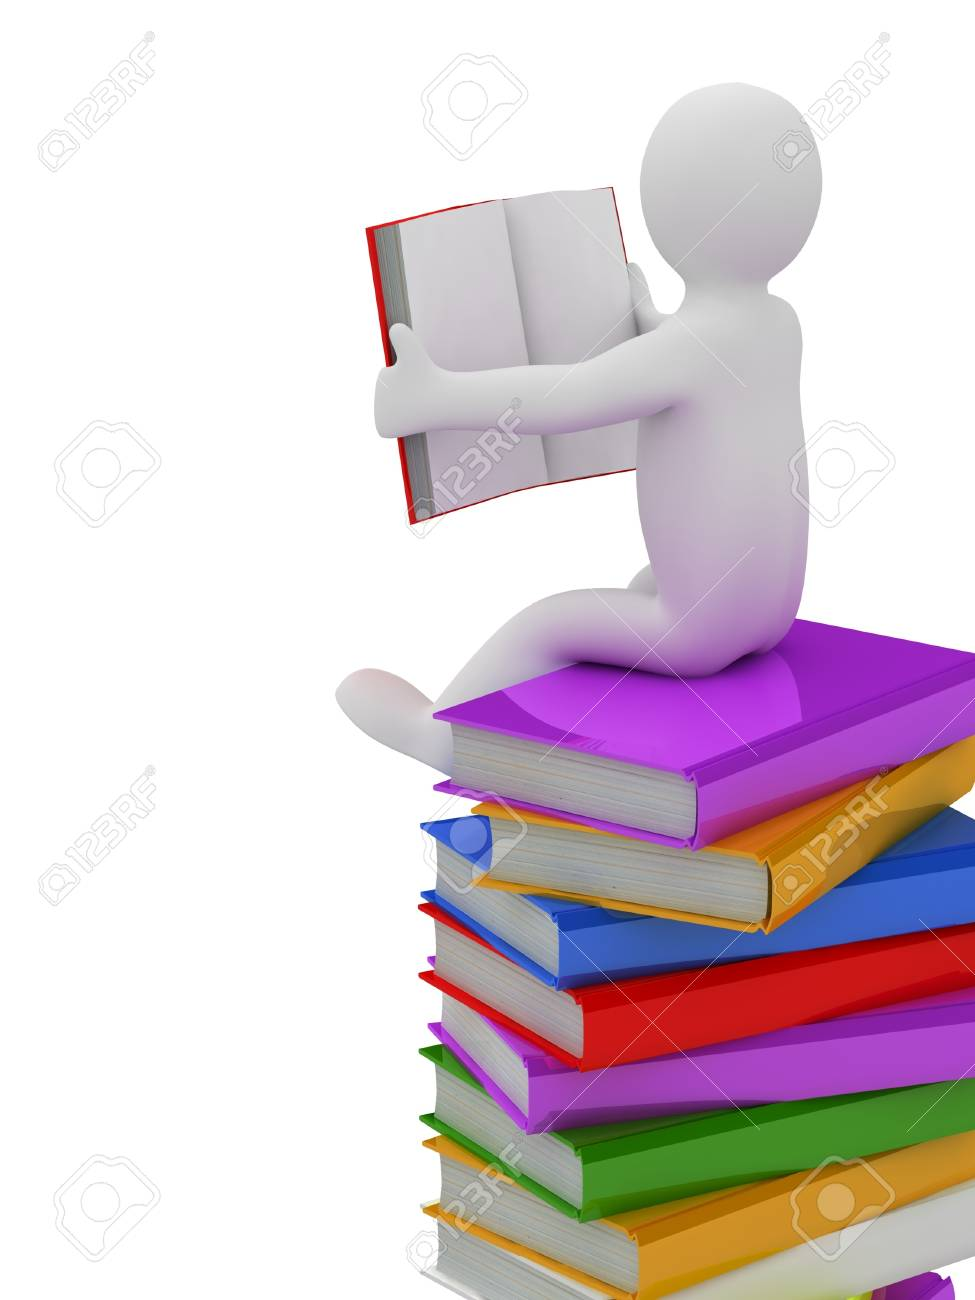 3D puppet on a pile of books, isolated on white background Stock Photo - 18326836